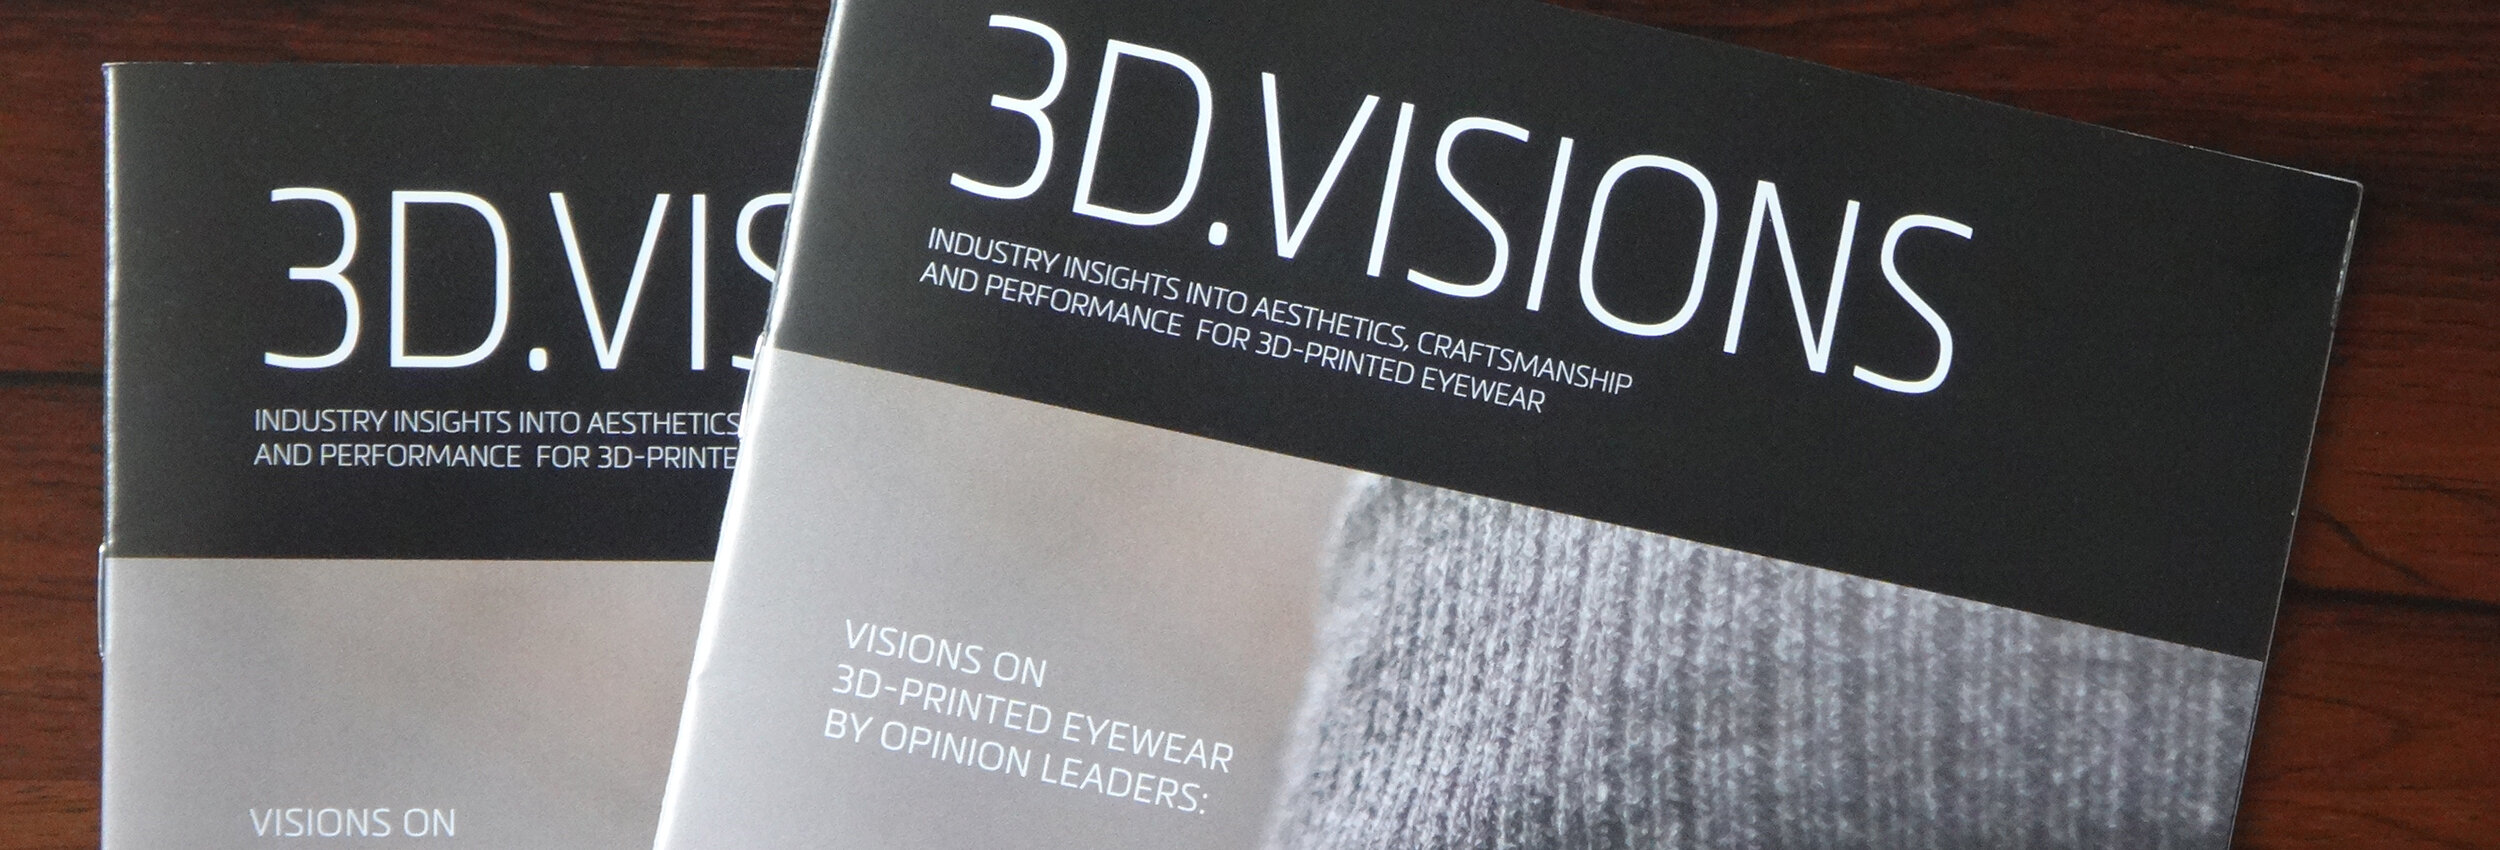 3D.VISIONS: PUBLICATION AND EXHIBITION FROM MATERIALISE (EN)